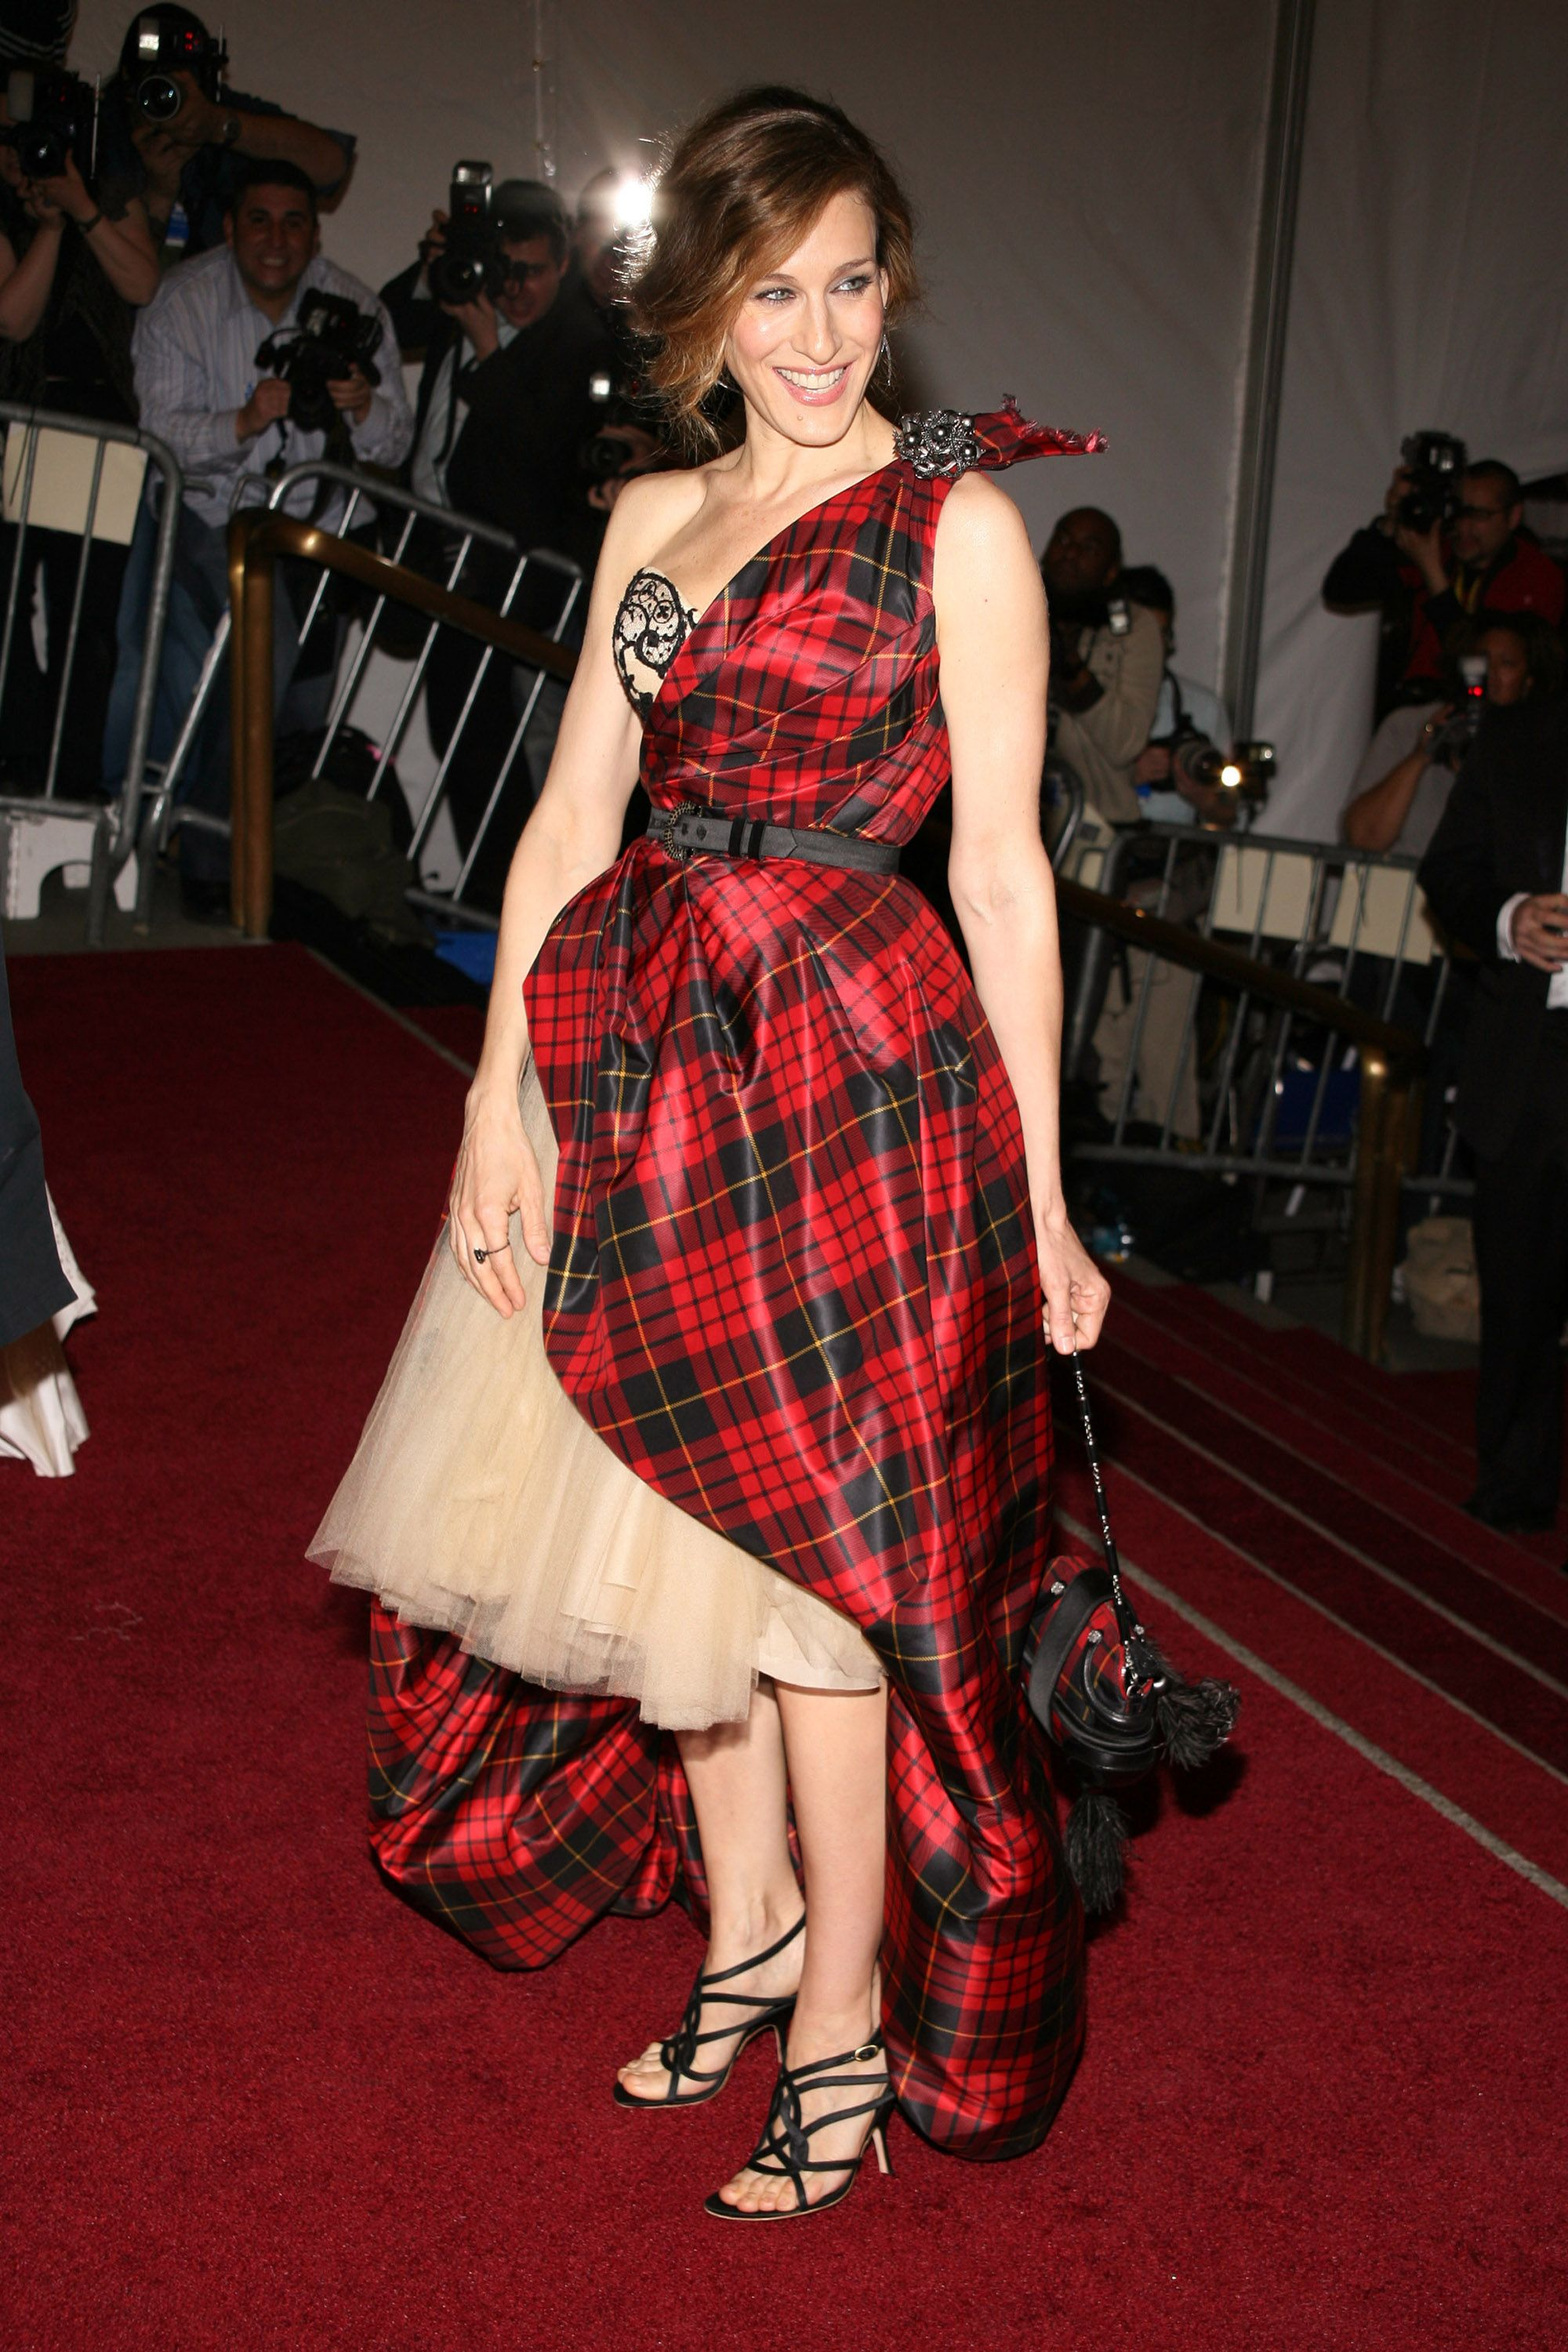 """Sarah Jessica Parker at the The """"Costume Institute Gala"""" celebrating """"AngloMania: Tradition and Transgression on British Fashion"""". at Metropolitan Museum of Art in New York, New York.   (Photo by Sylvain Gaboury/FilmMagic)"""